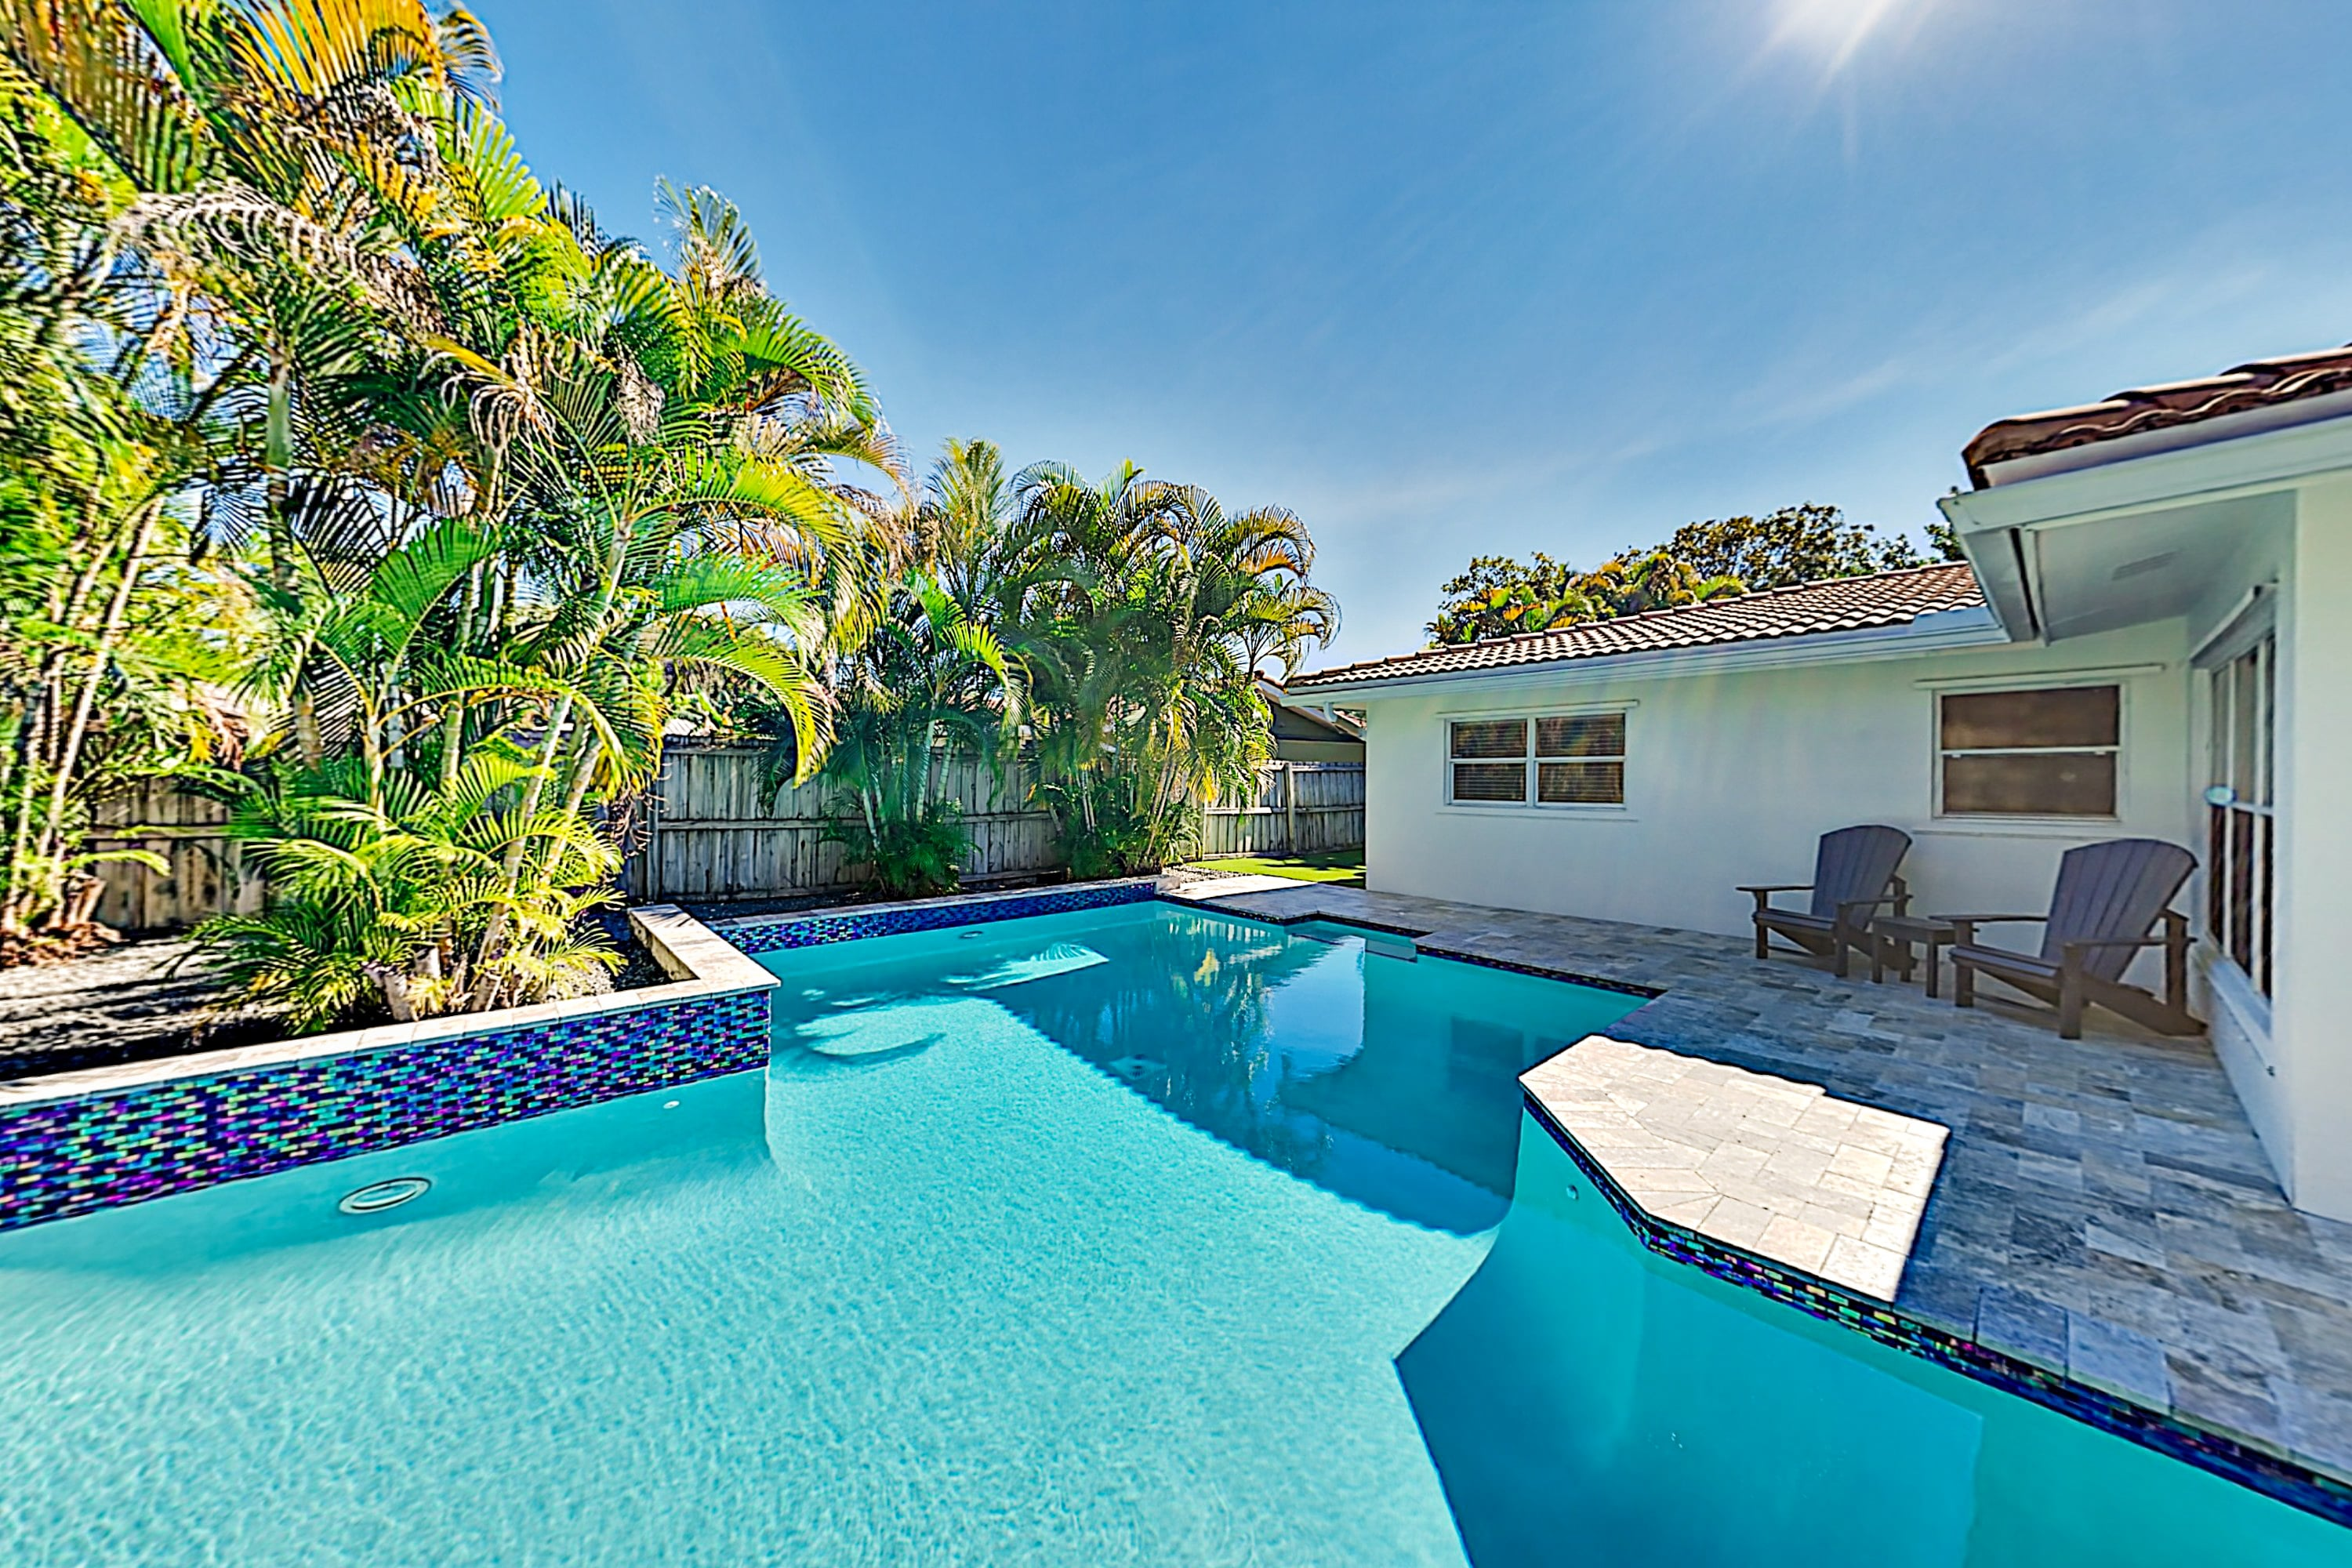 Property Image 1 - Renovated Coral Ridge Home with Pool, Grill & Spa